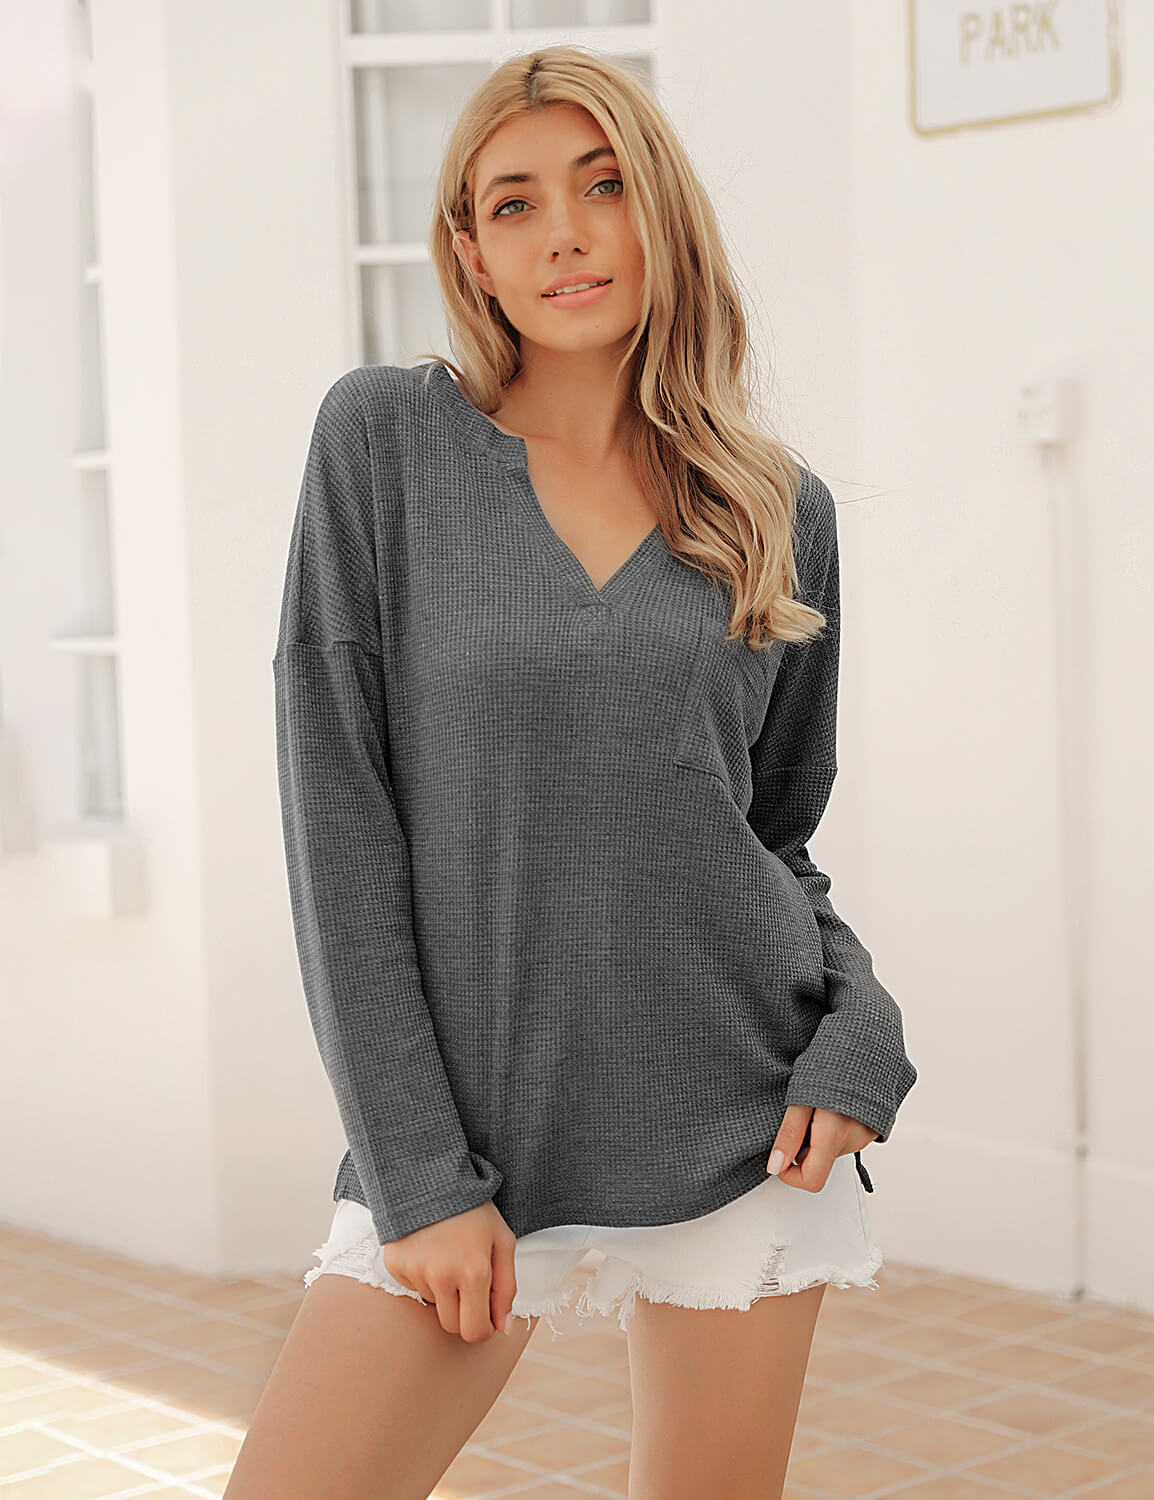 Blooming Jelly_Casual Knitted Long Sleeve Pocket T-Shirt_Gray_152694_07_2020 Women Autumn Wear Fashion_Tops_T-Shirt